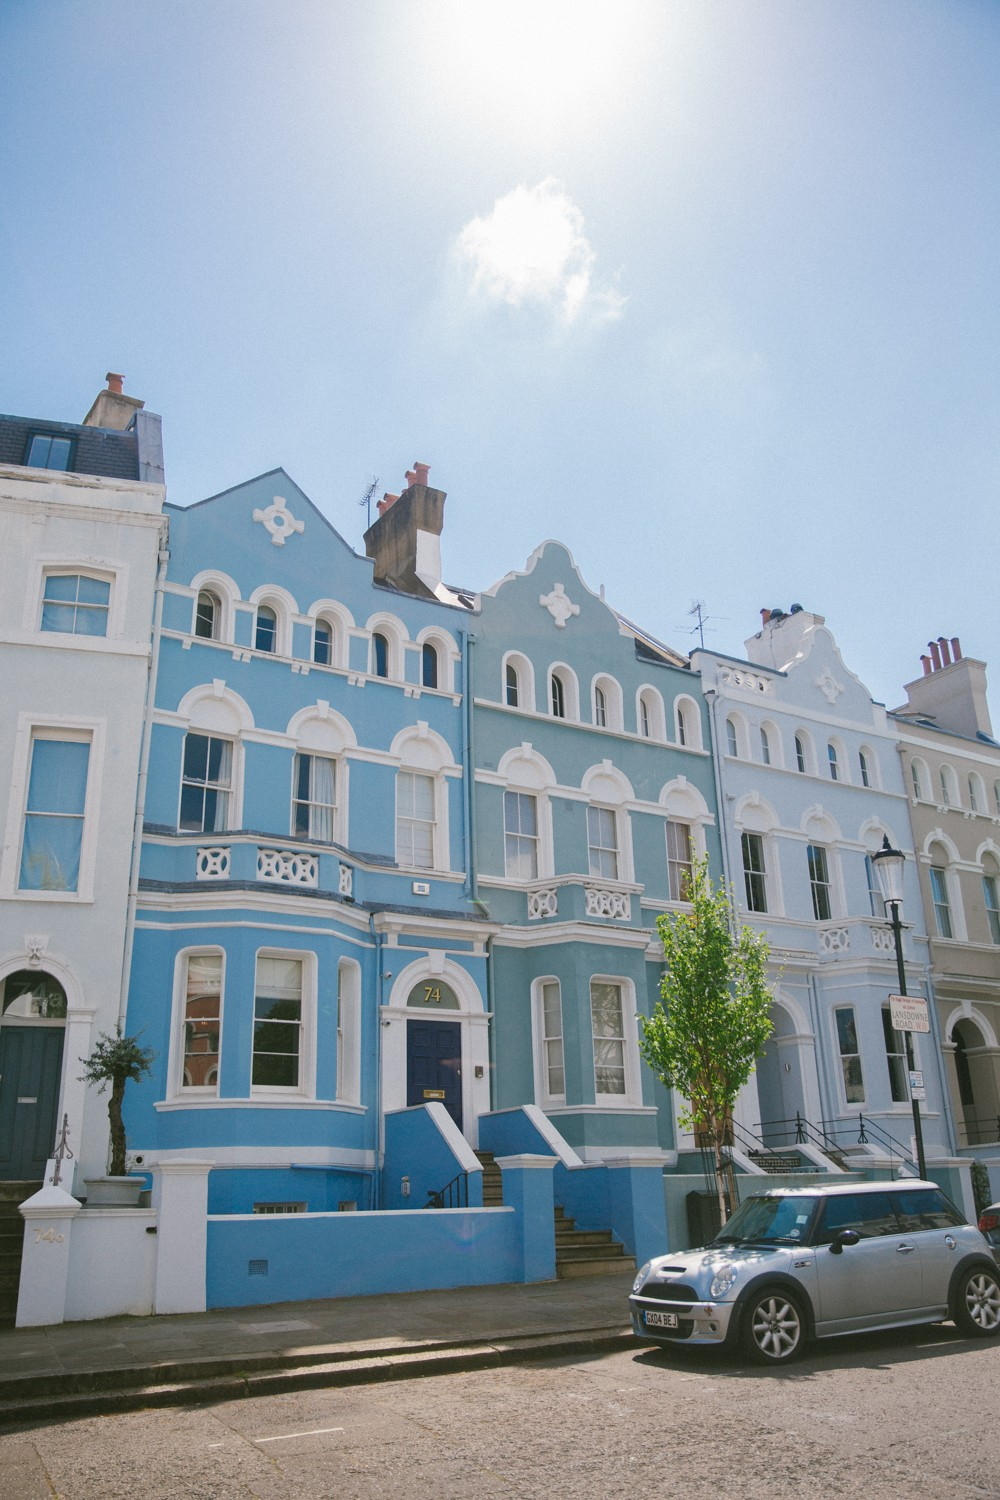 Notting Hill Blues